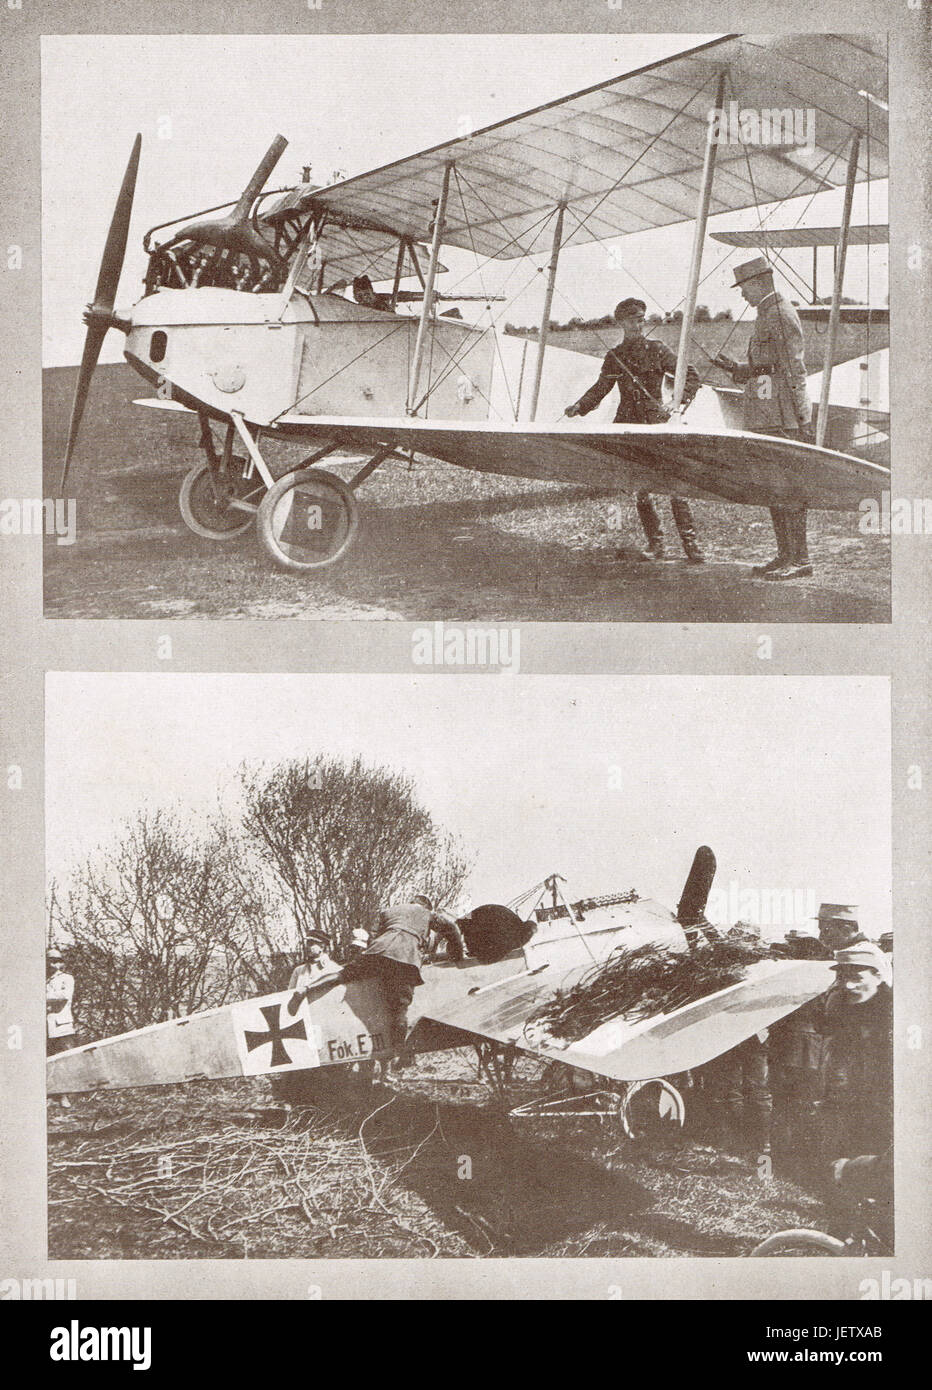 German aeroplanes brought down in France - Stock Image